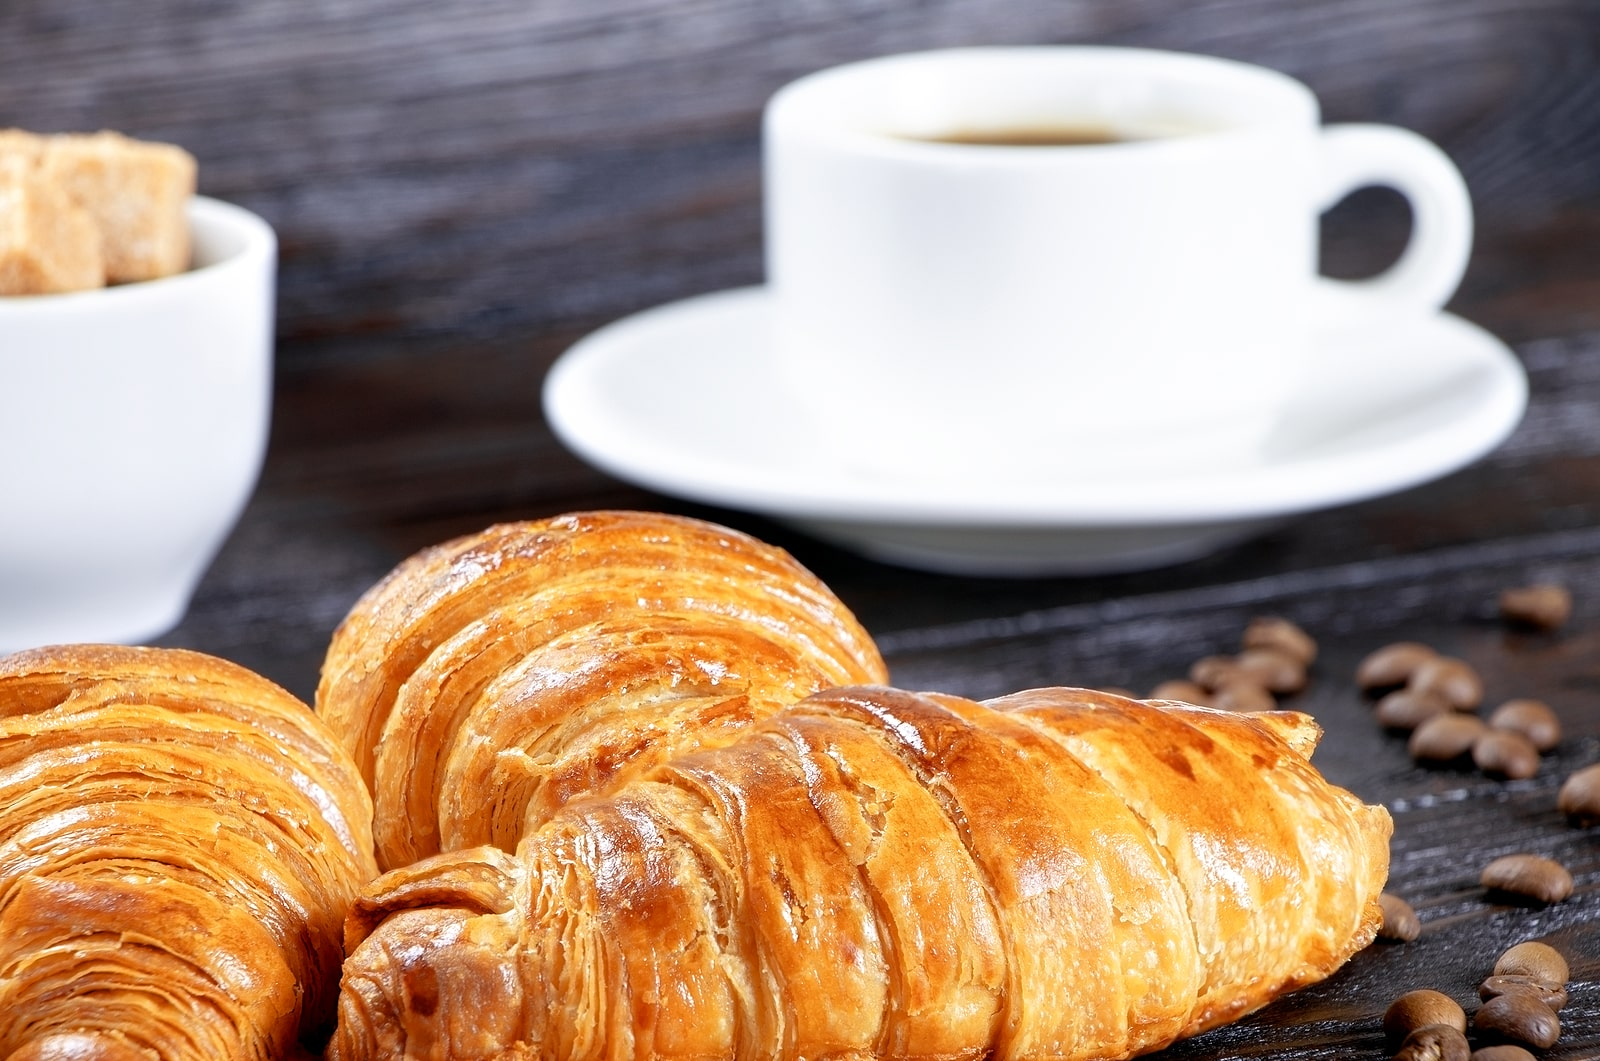 Refined carbs and fatigue- plate of croissants